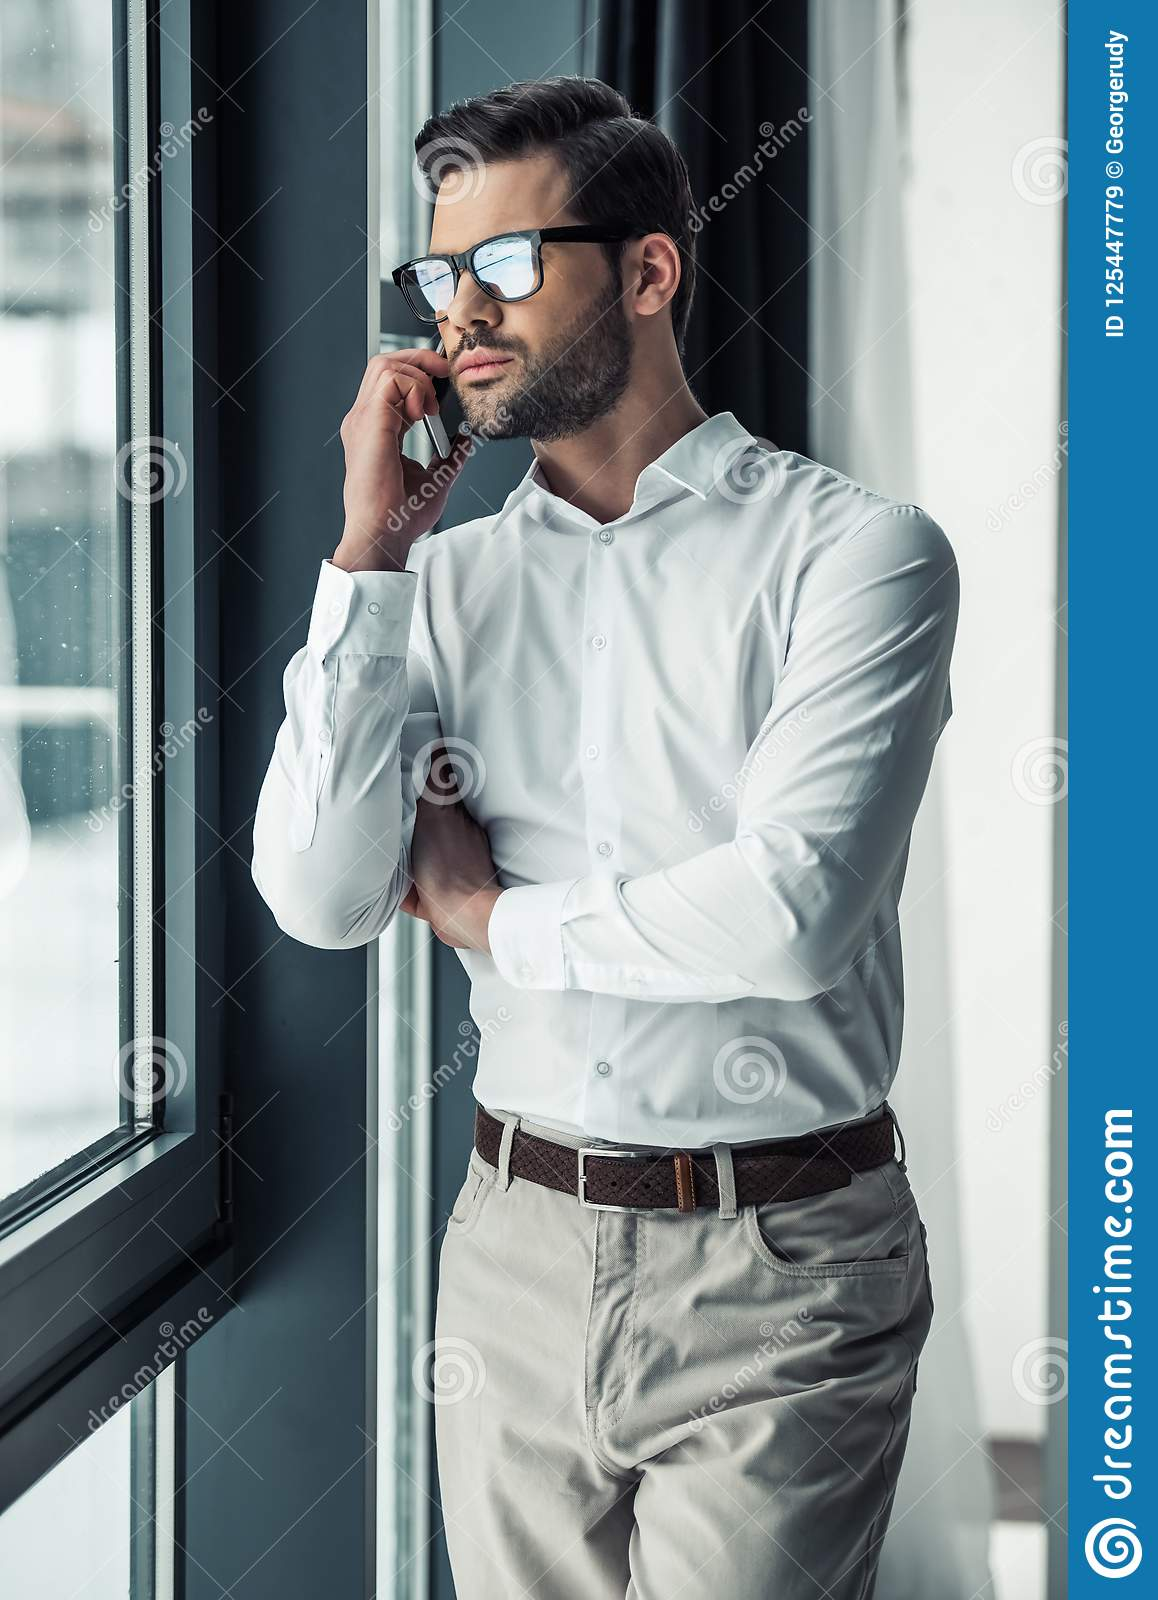 Download Handsome Businessman In Office Stock Image - Image of businessman, executive: 125447779